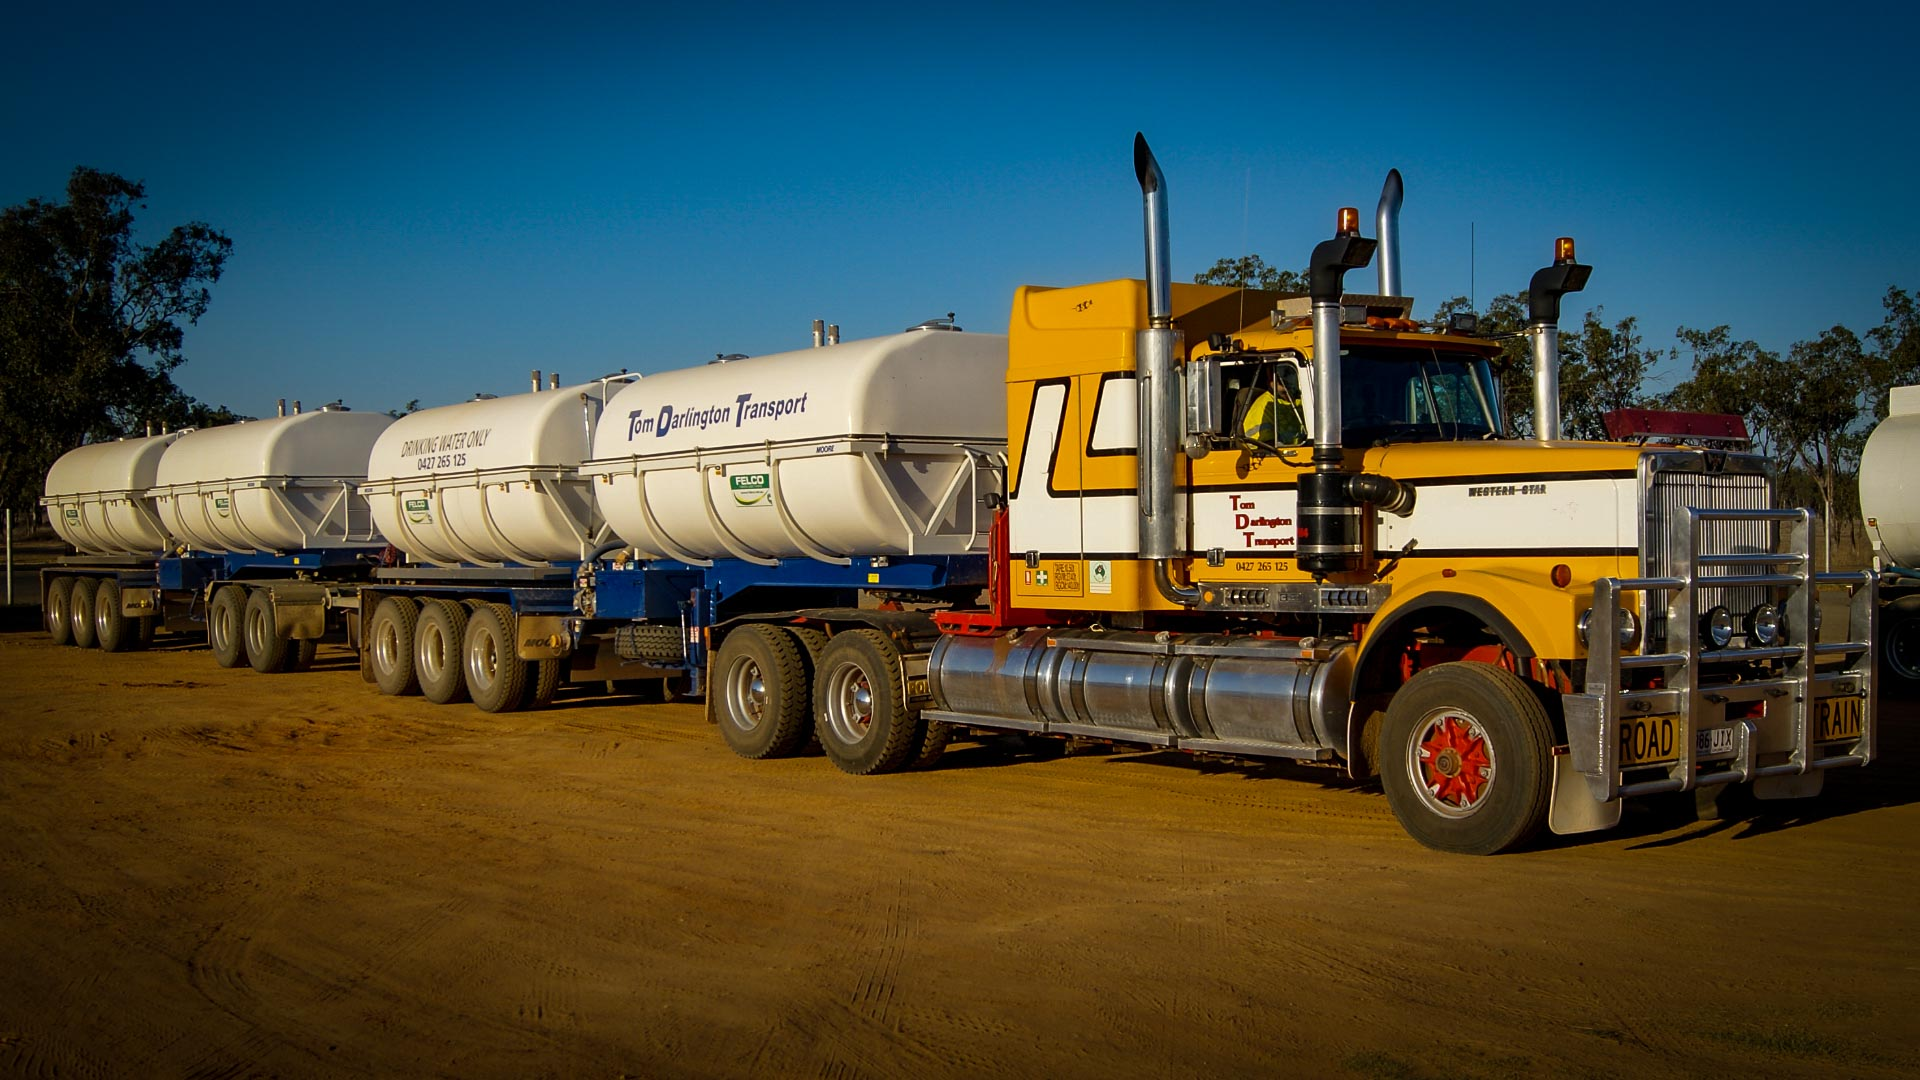 Bulk Potable Water Tanker for Remote Camp and Town Re-Supply